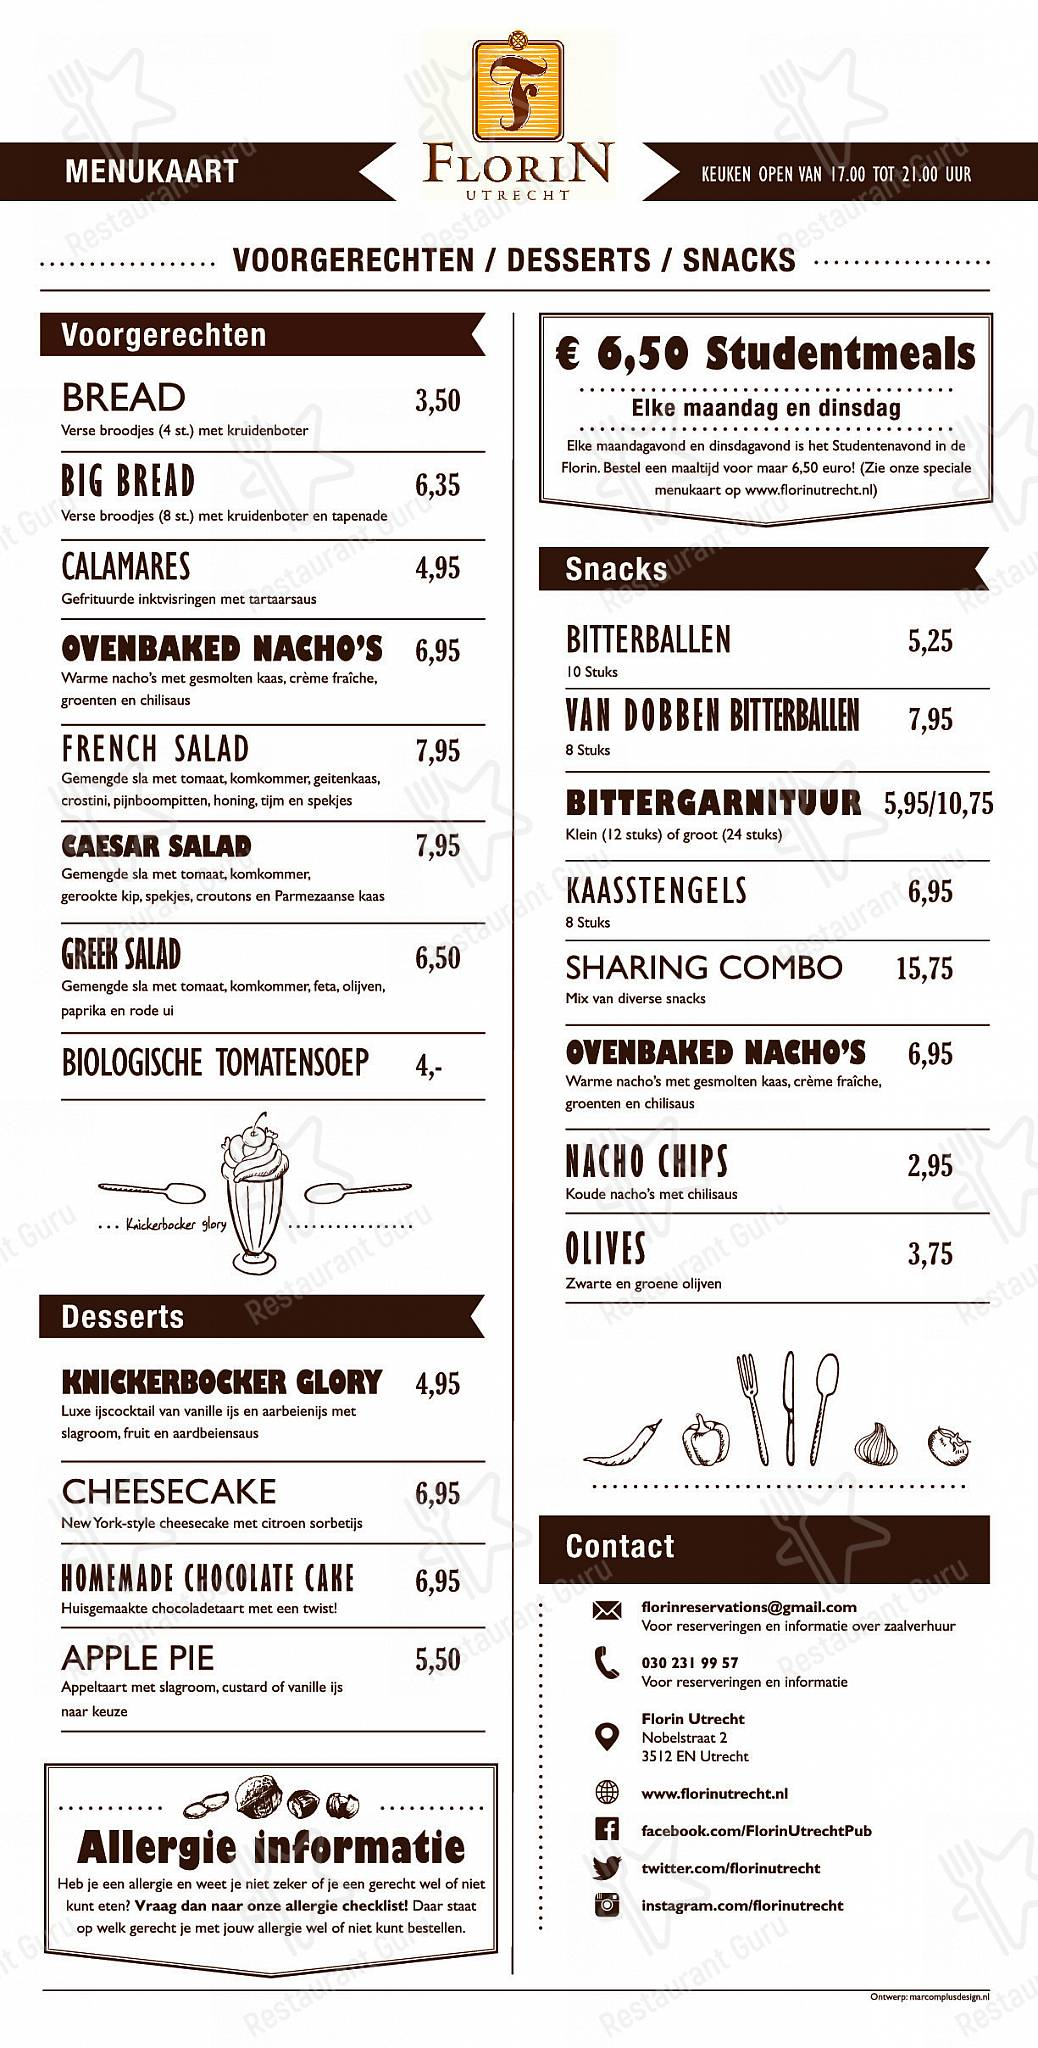 Florin menu - dishes and beverages